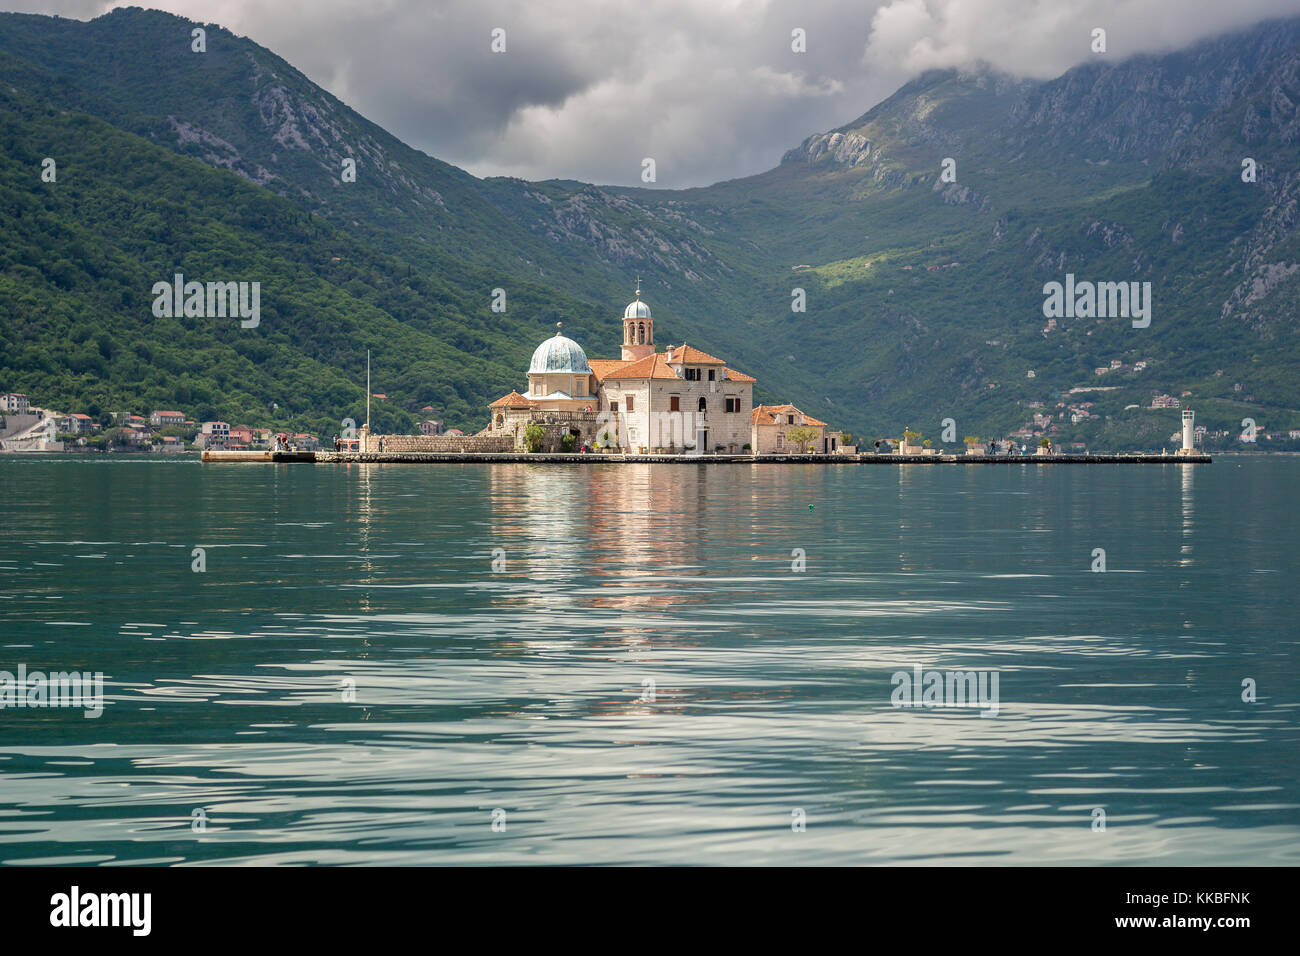 Our Lady of the Rocks church taken from a boat sailing in the Bay of Kotor, Montenegro. - Stock Image